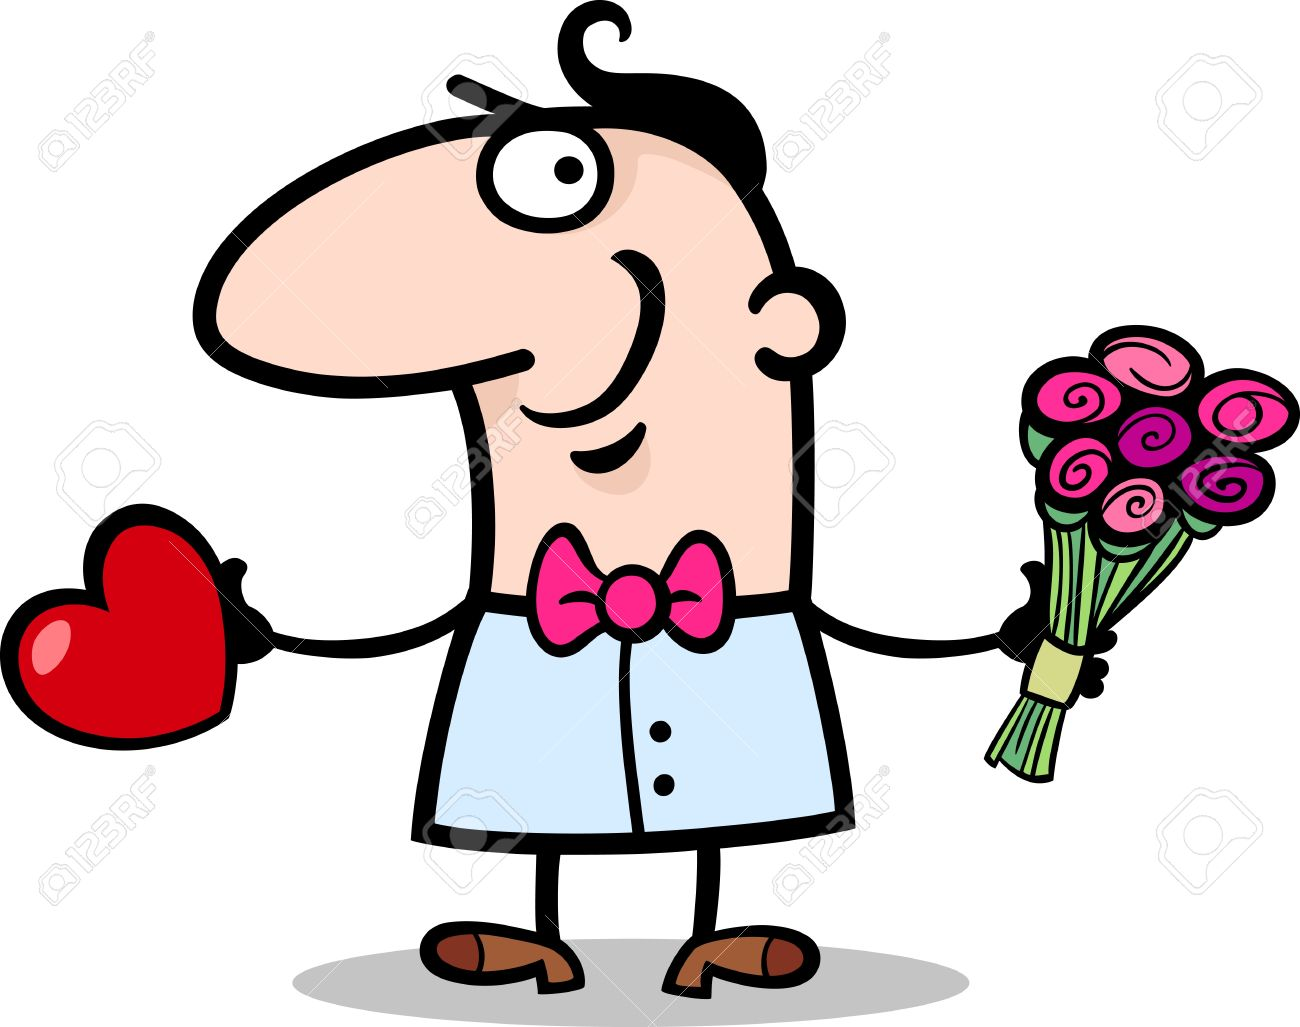 cartoon st valentines illustration of happy funny man in love